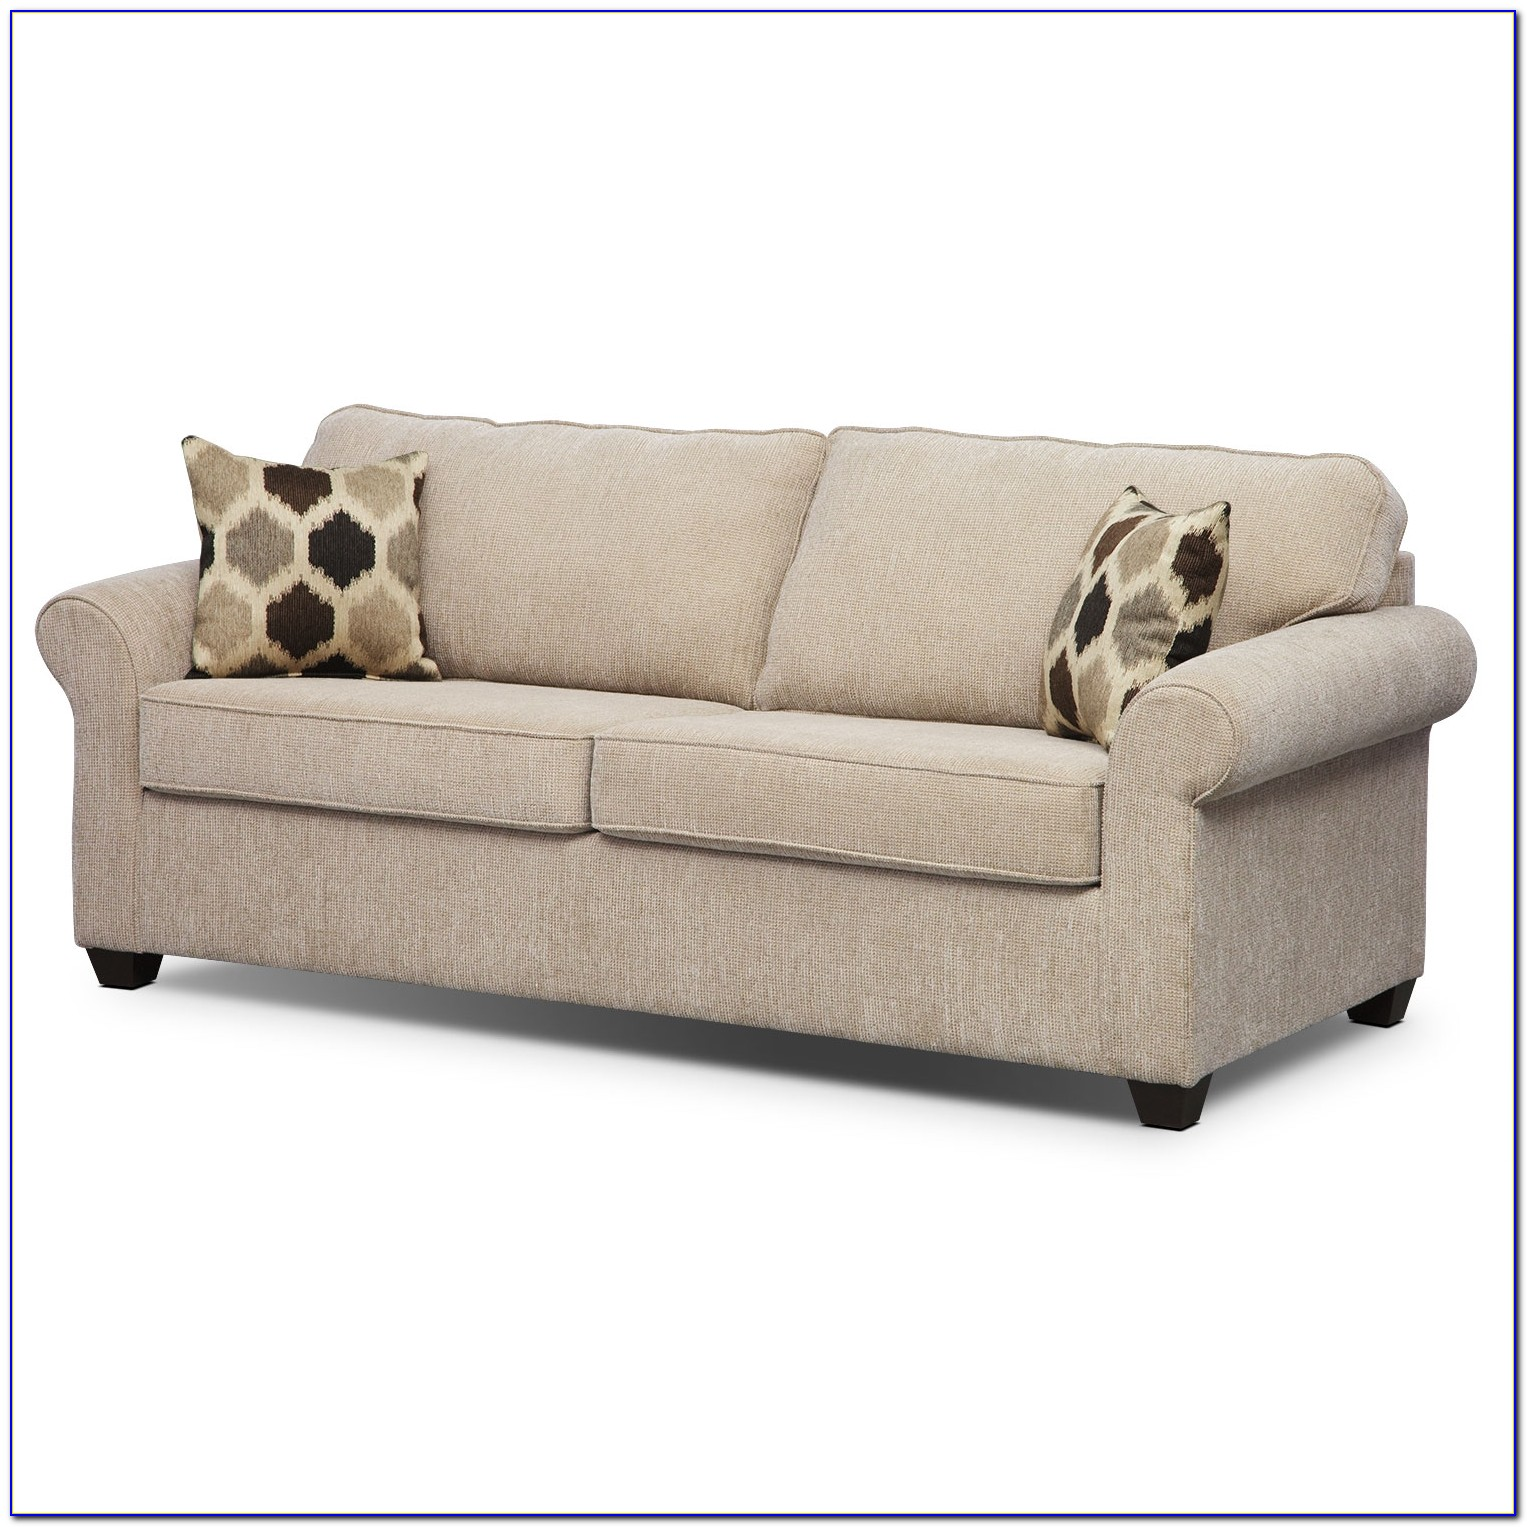 Sienna Queen Chaise Sectional Sleeper Sofa By Savvy